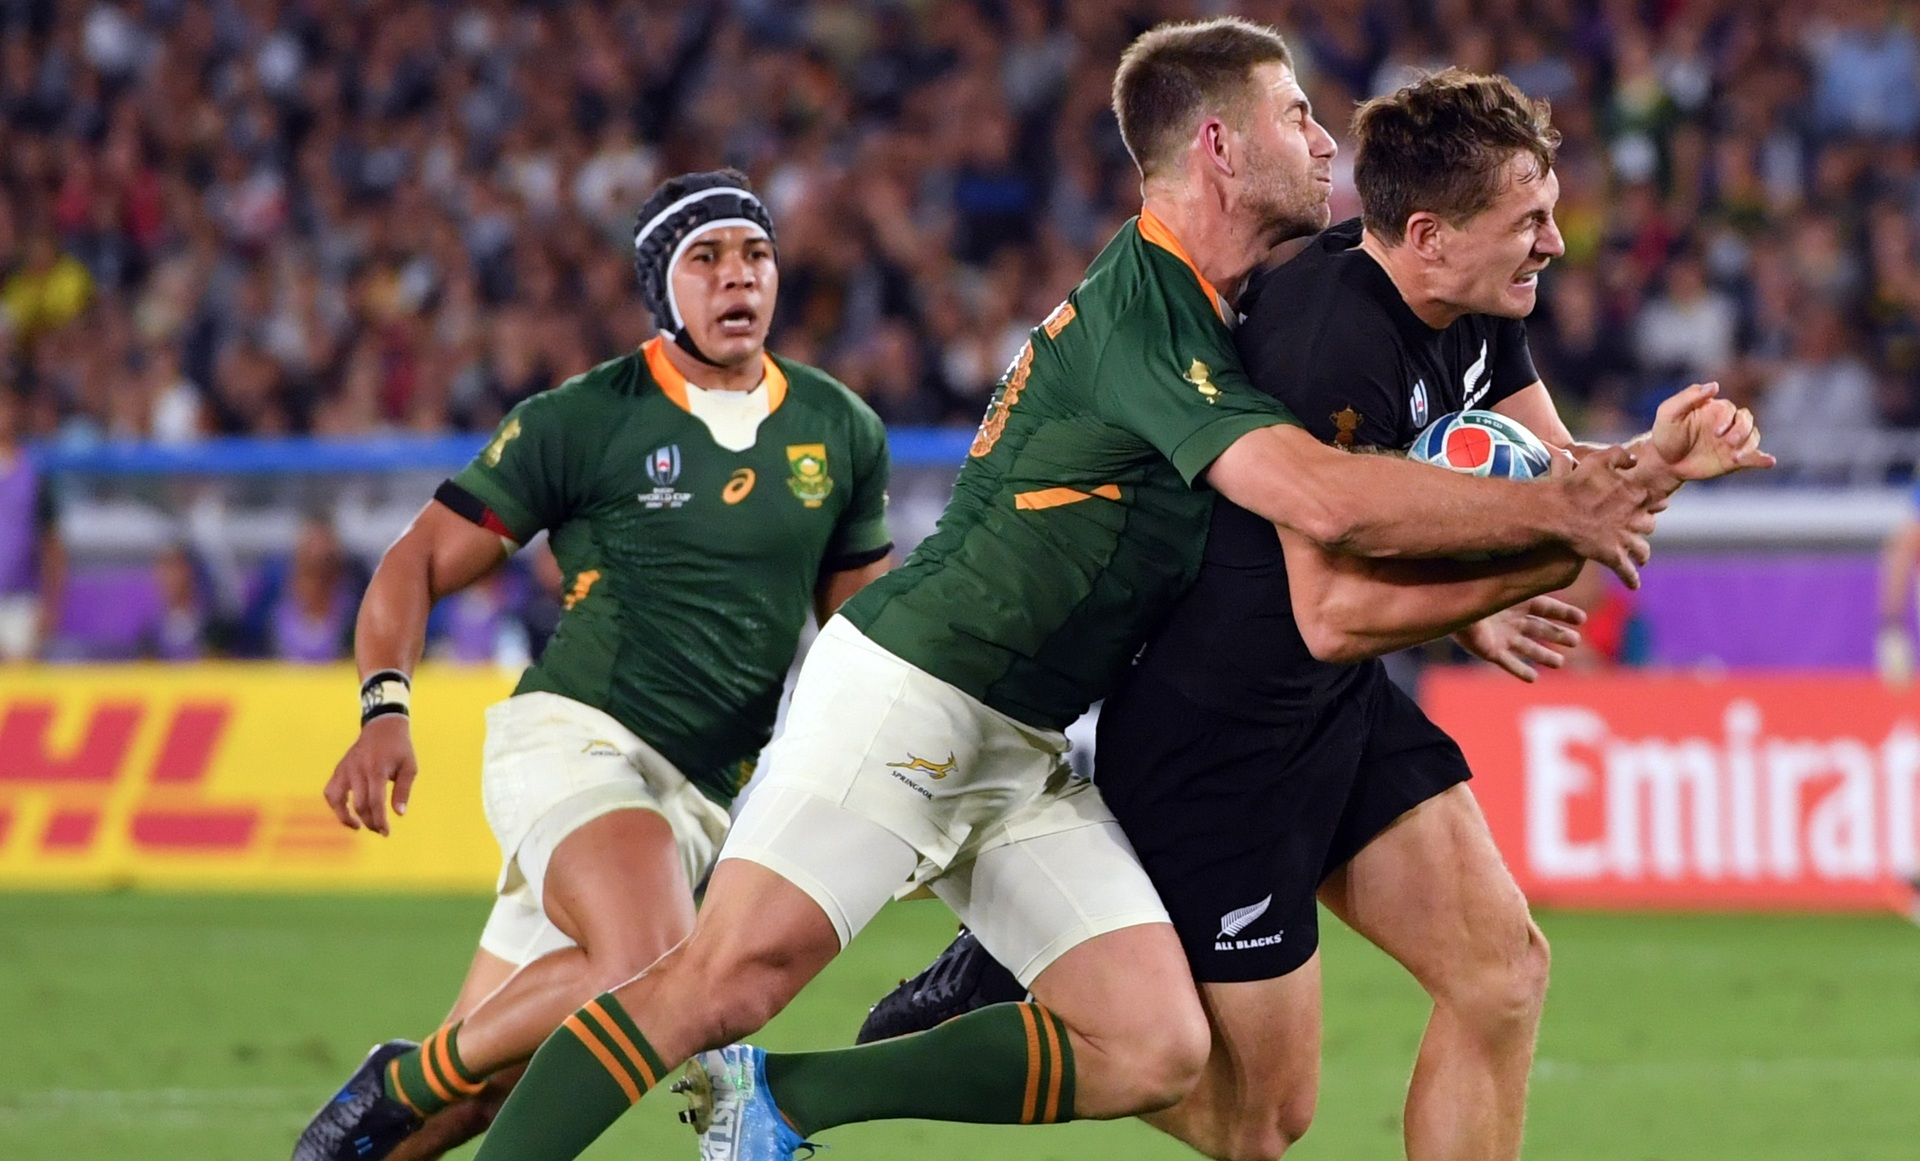 SA expert: The one thing Springboks must do to prove dominance over ABs